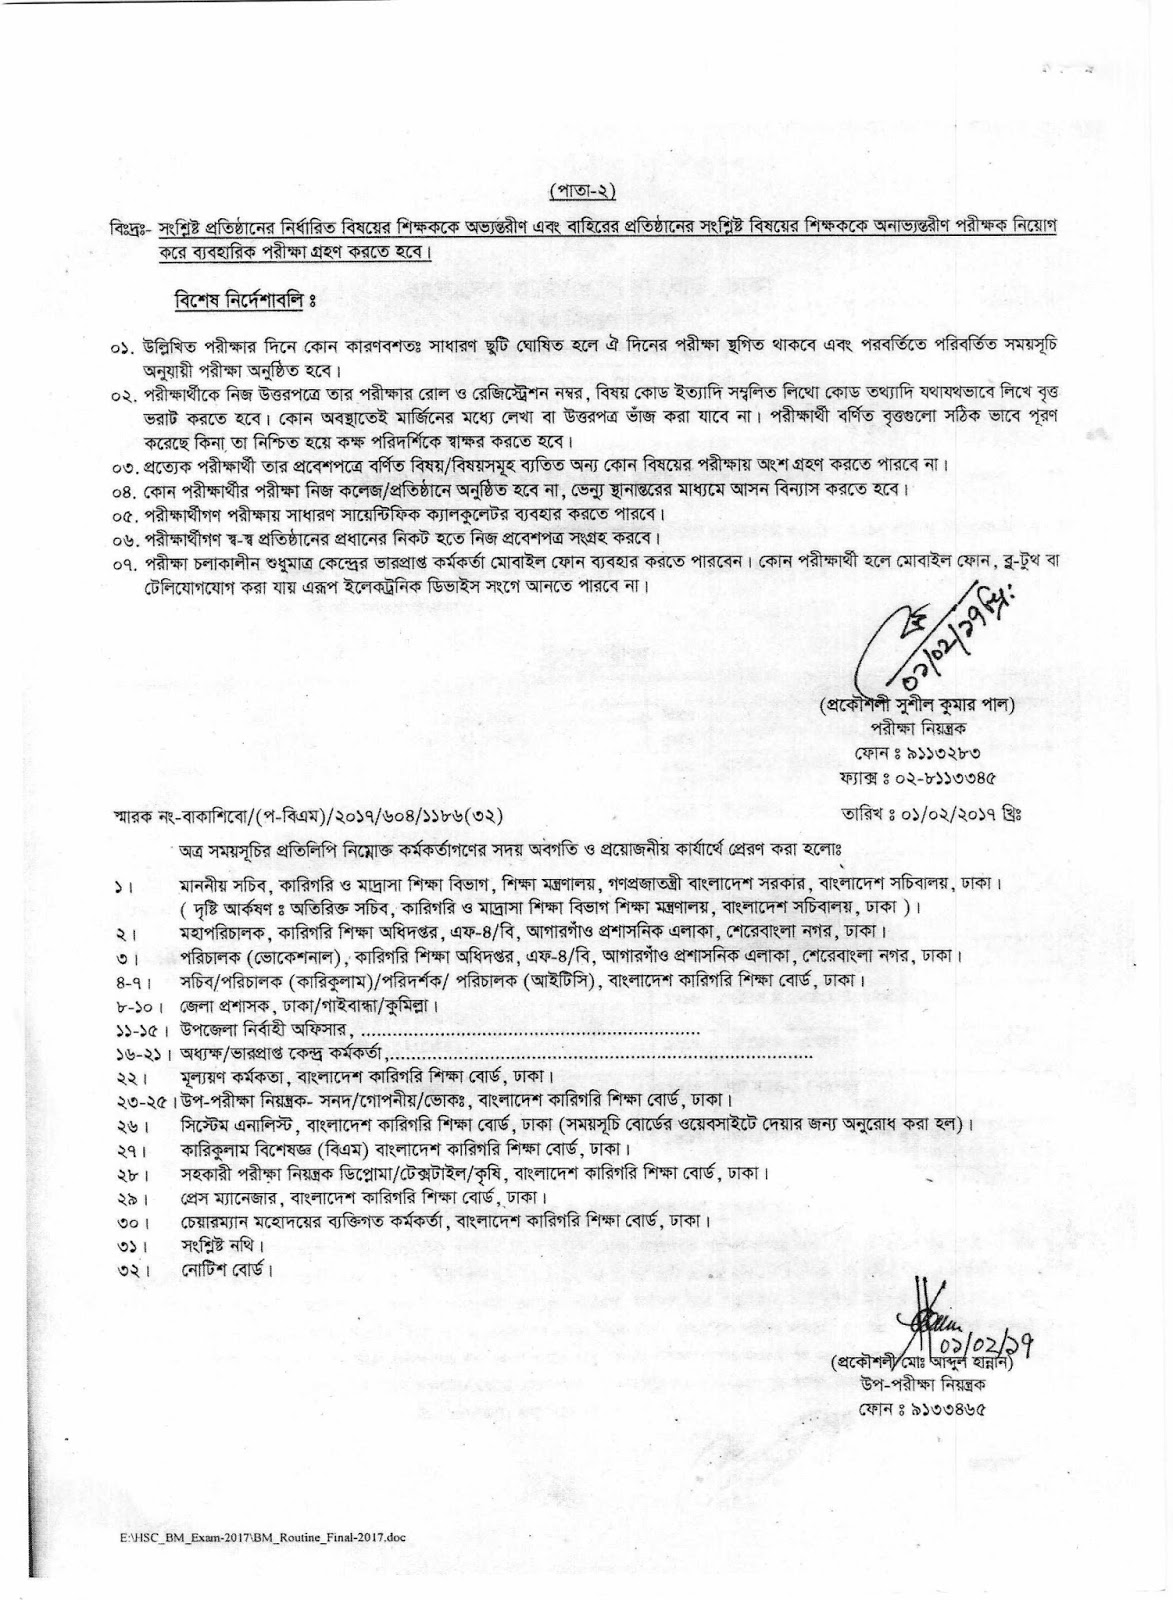 Diploma in Commerce 2017 routine Page 2